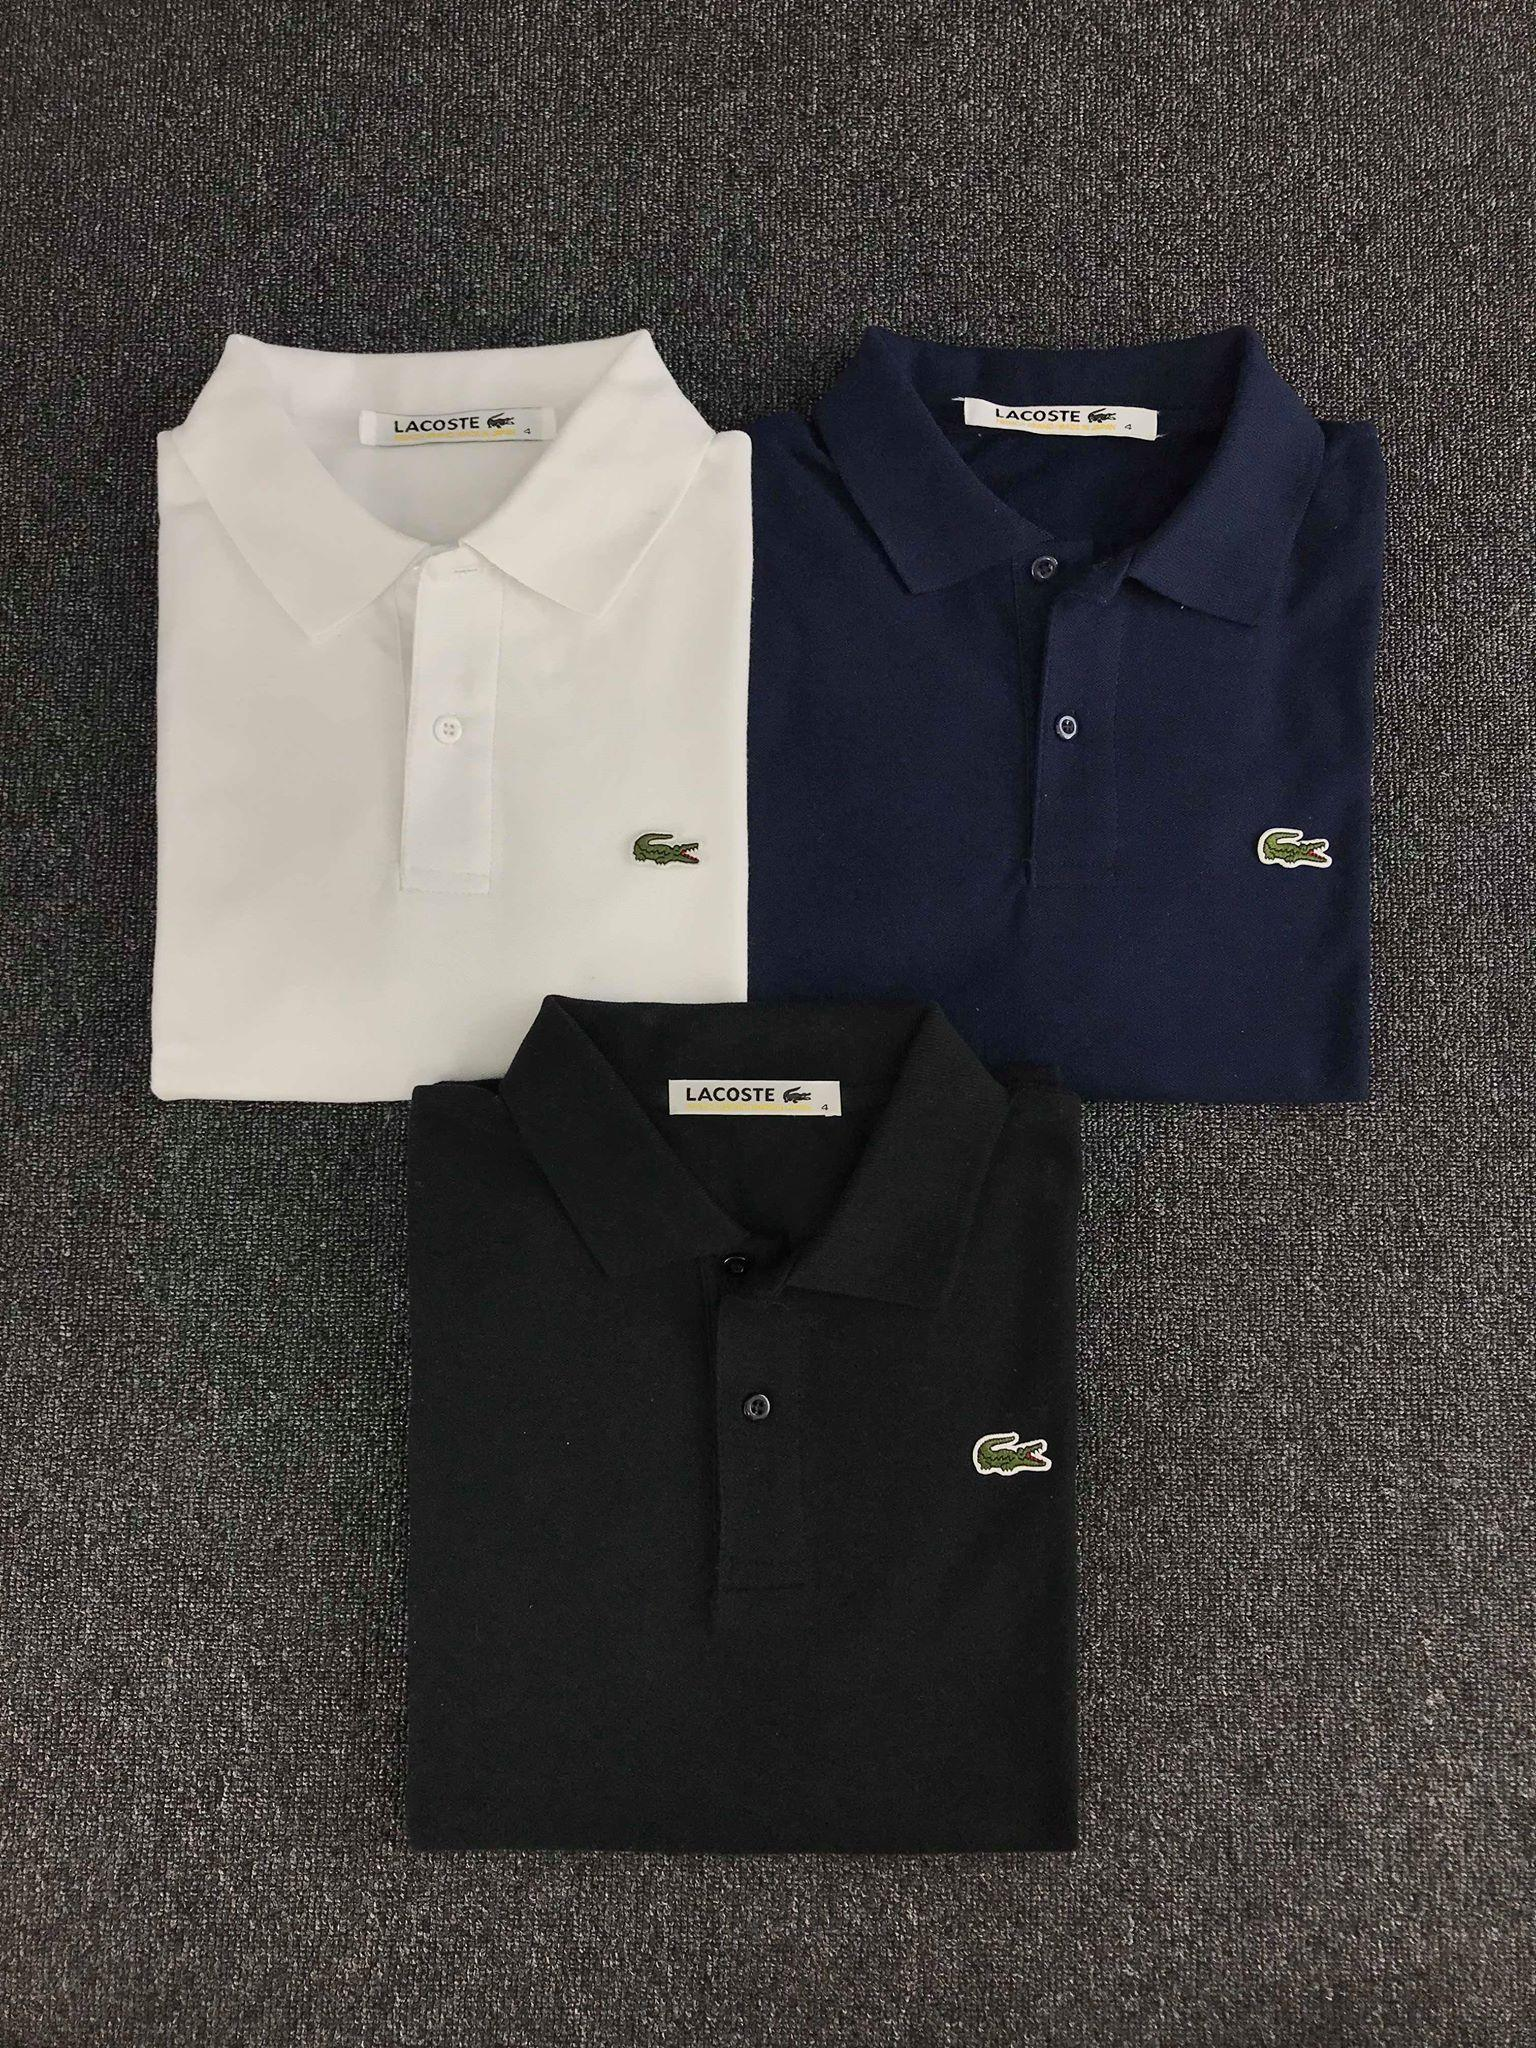 5aff78313 Lacoste Philippines - Lacoste Polo for Men for sale - prices ...